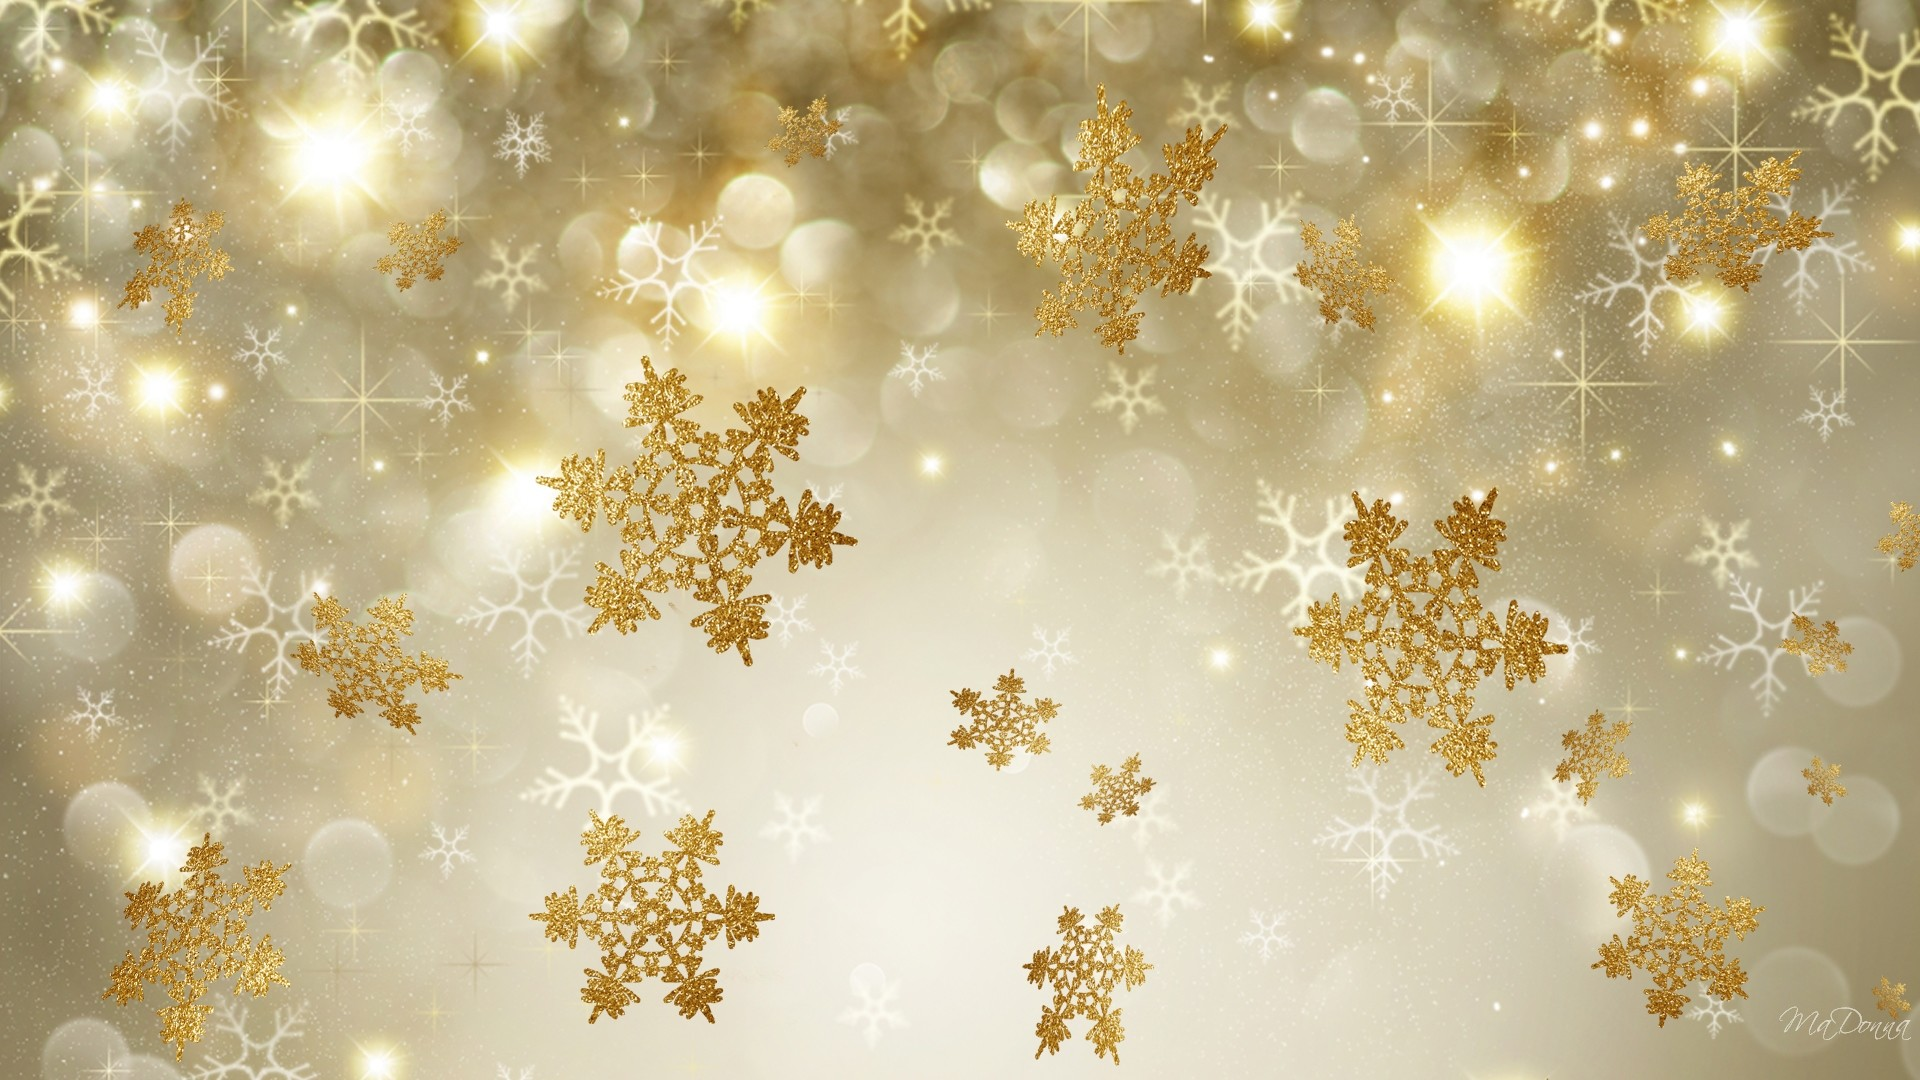 Res: 1920x1080, Artistic - Snowflake Artistic Winter Golden Gold Wallpaper